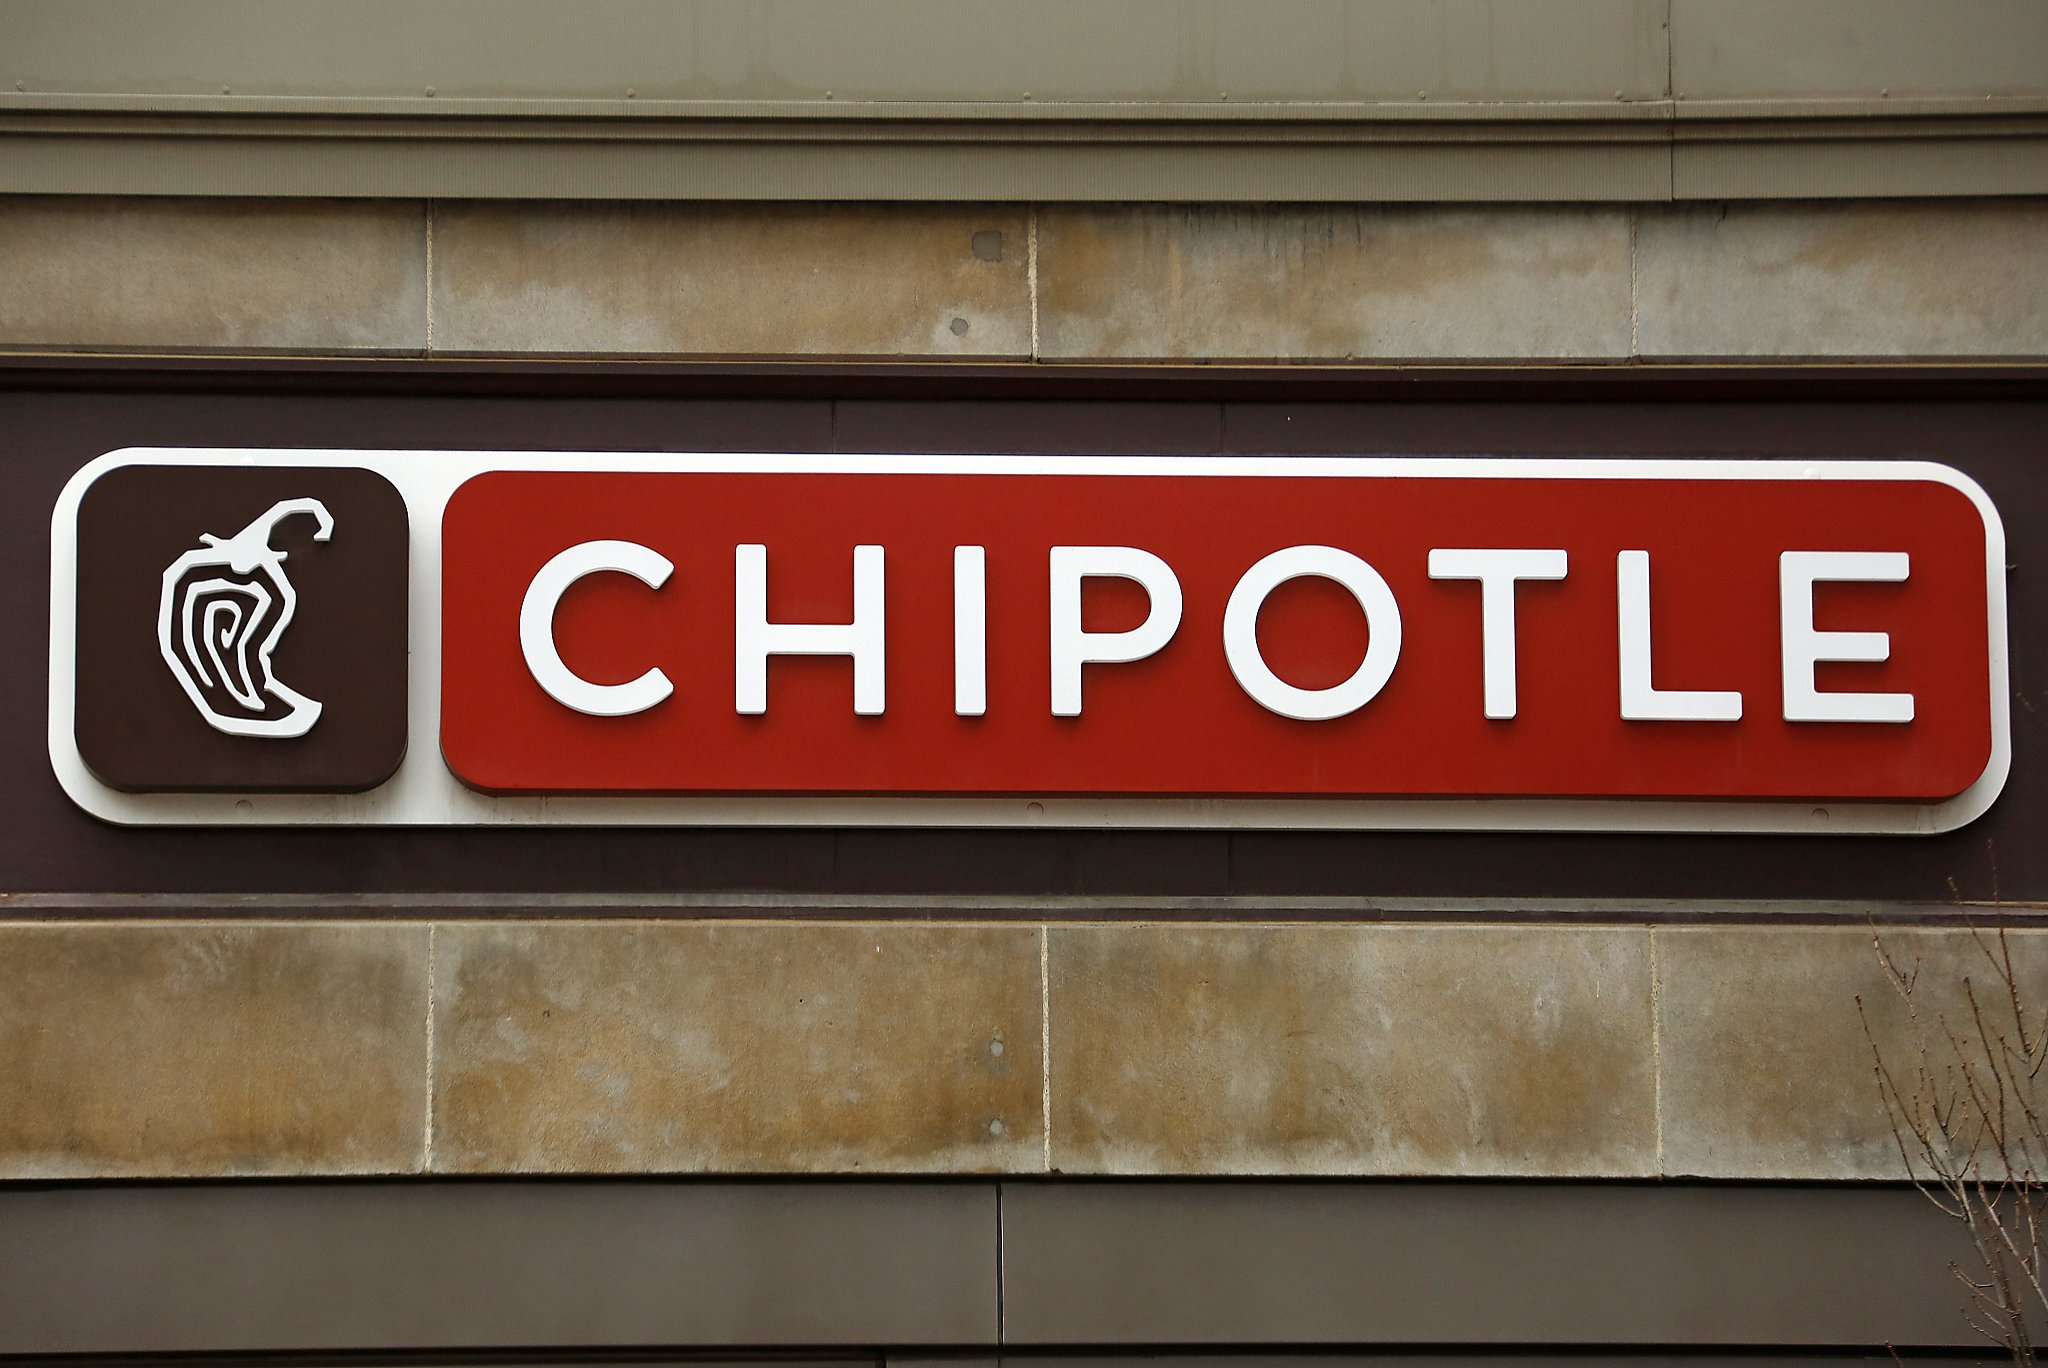 chipotle panera get a u0027s as report grades fast food chains on